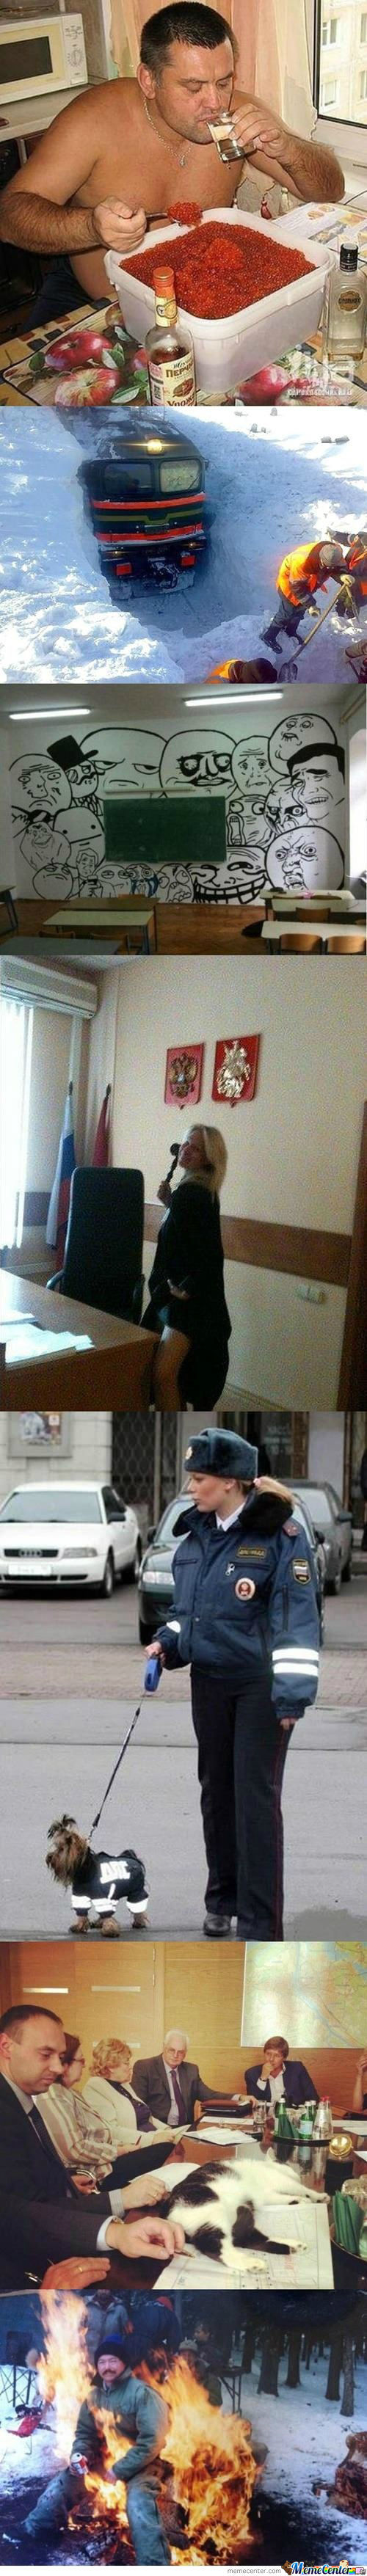 Meanwhile In Russia..